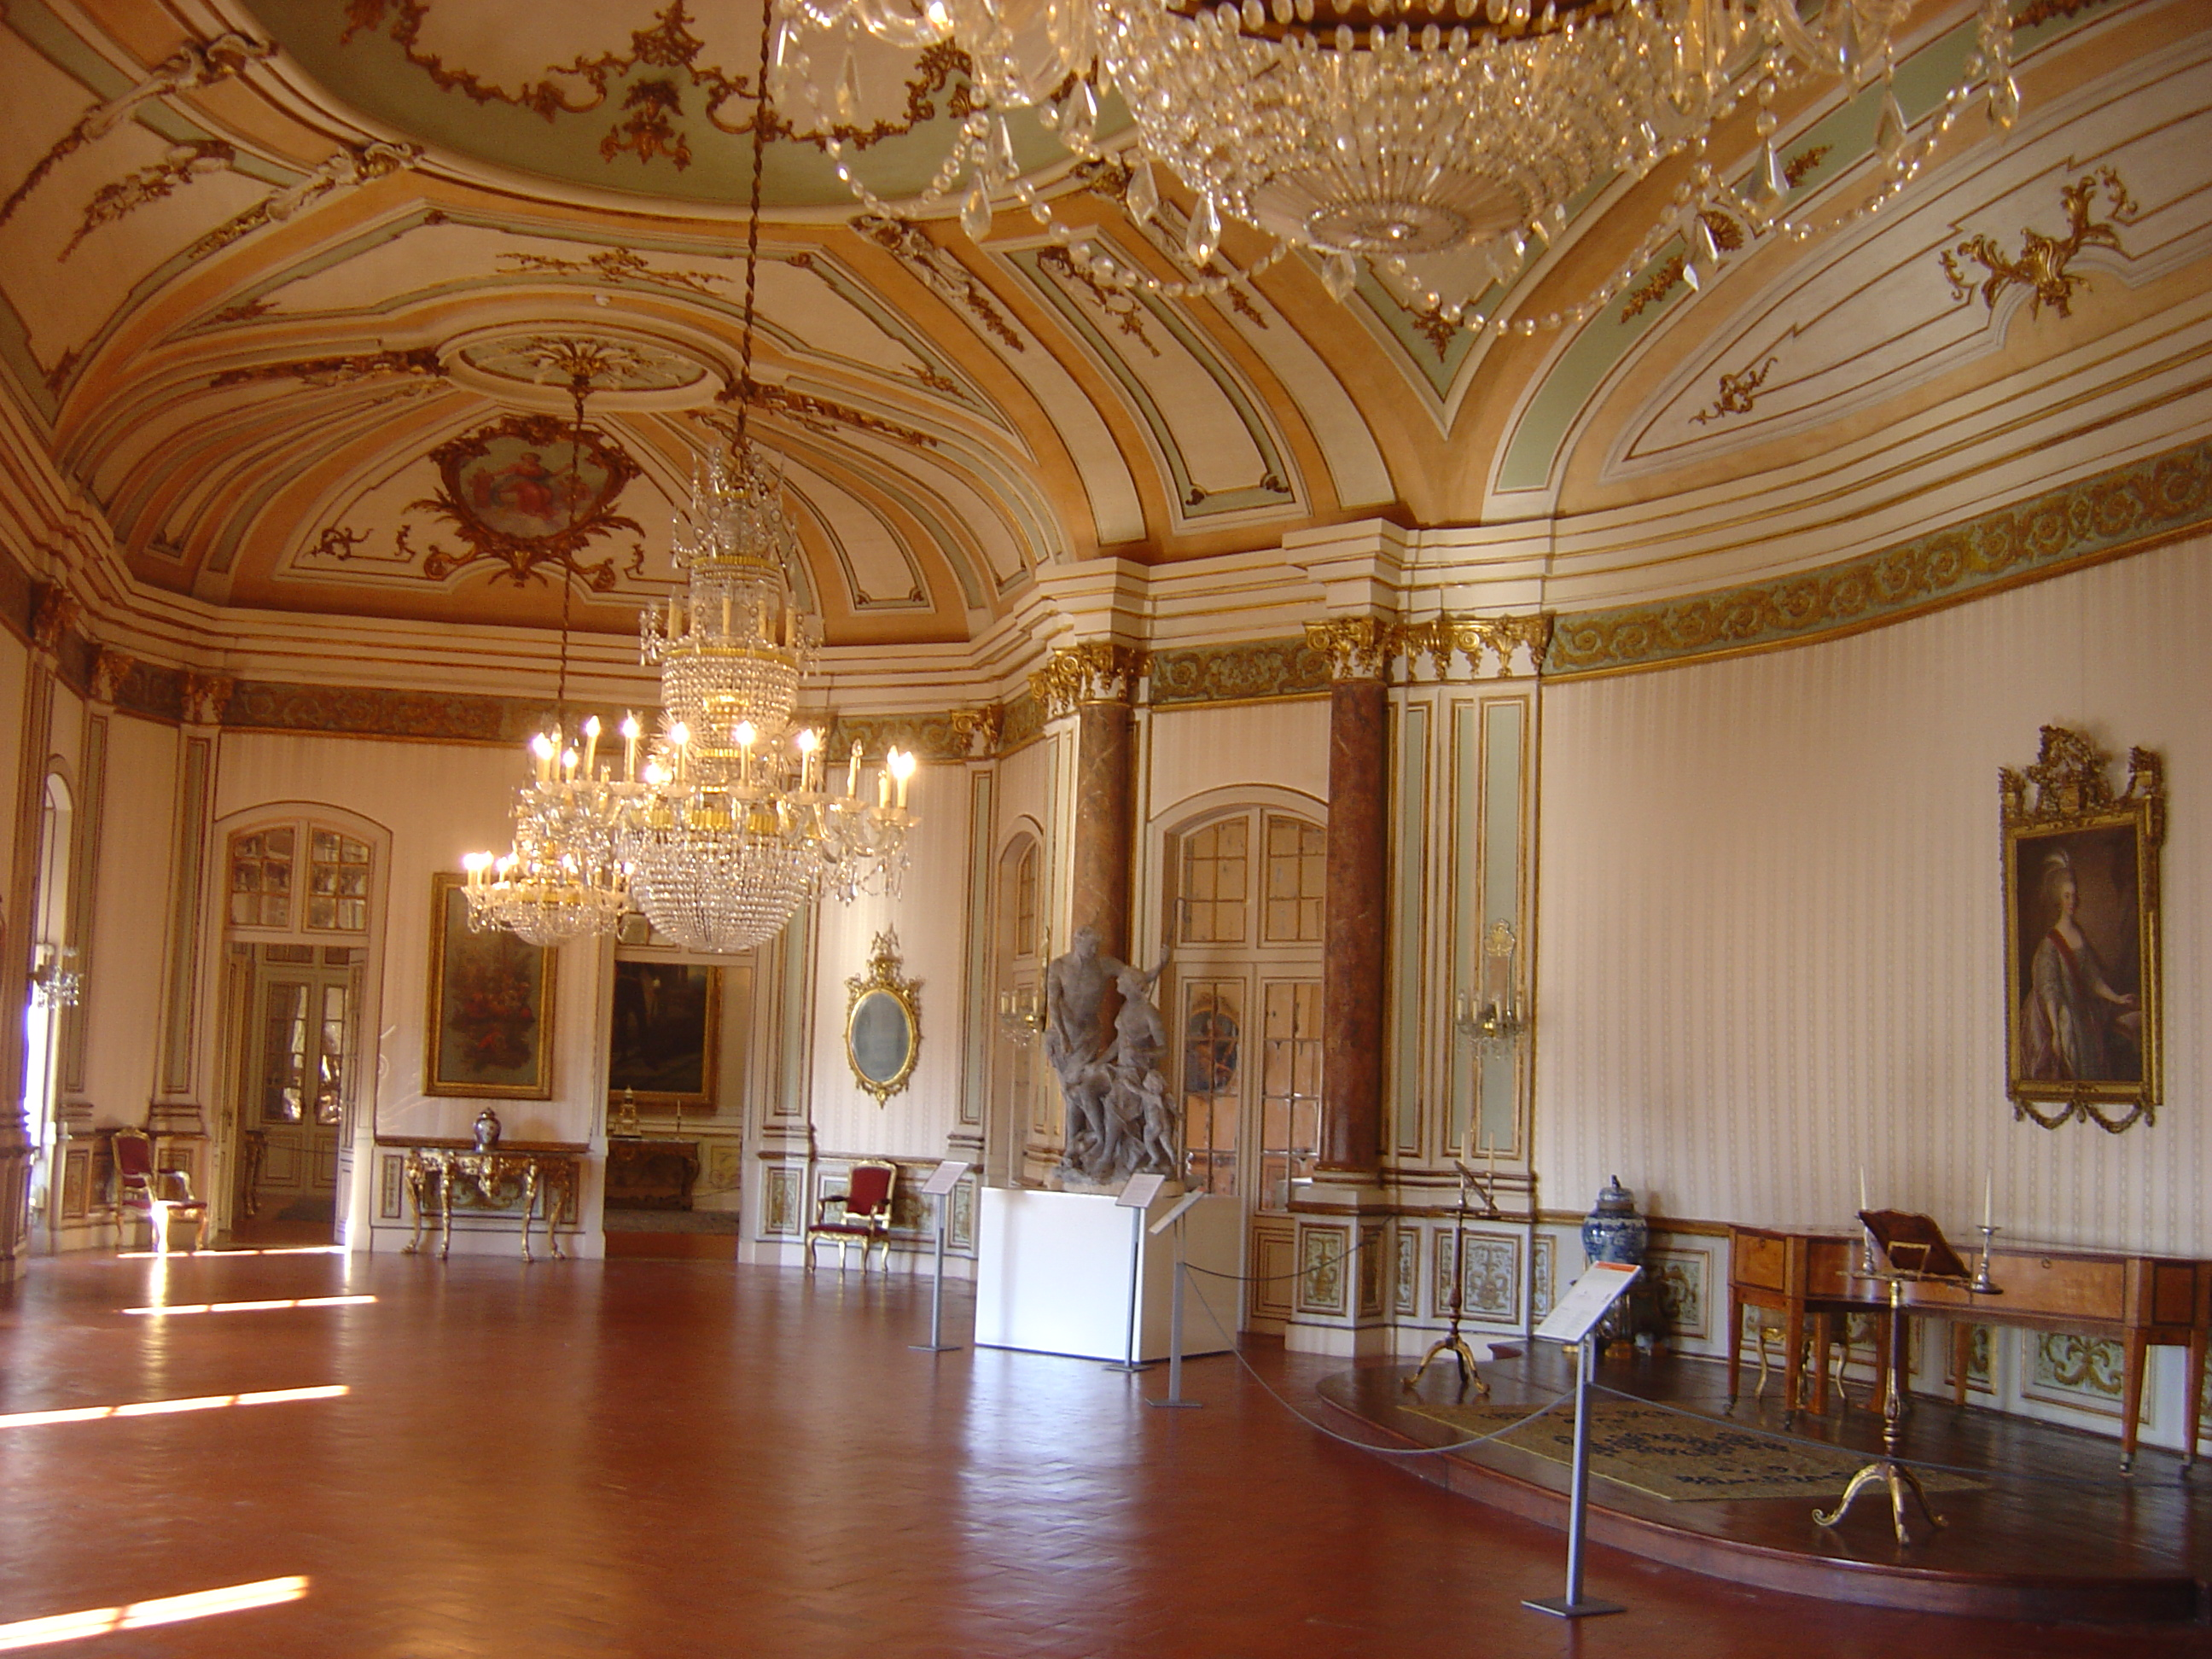 File:Queluz Palace interior 1.JPG - Wikimedia Commons